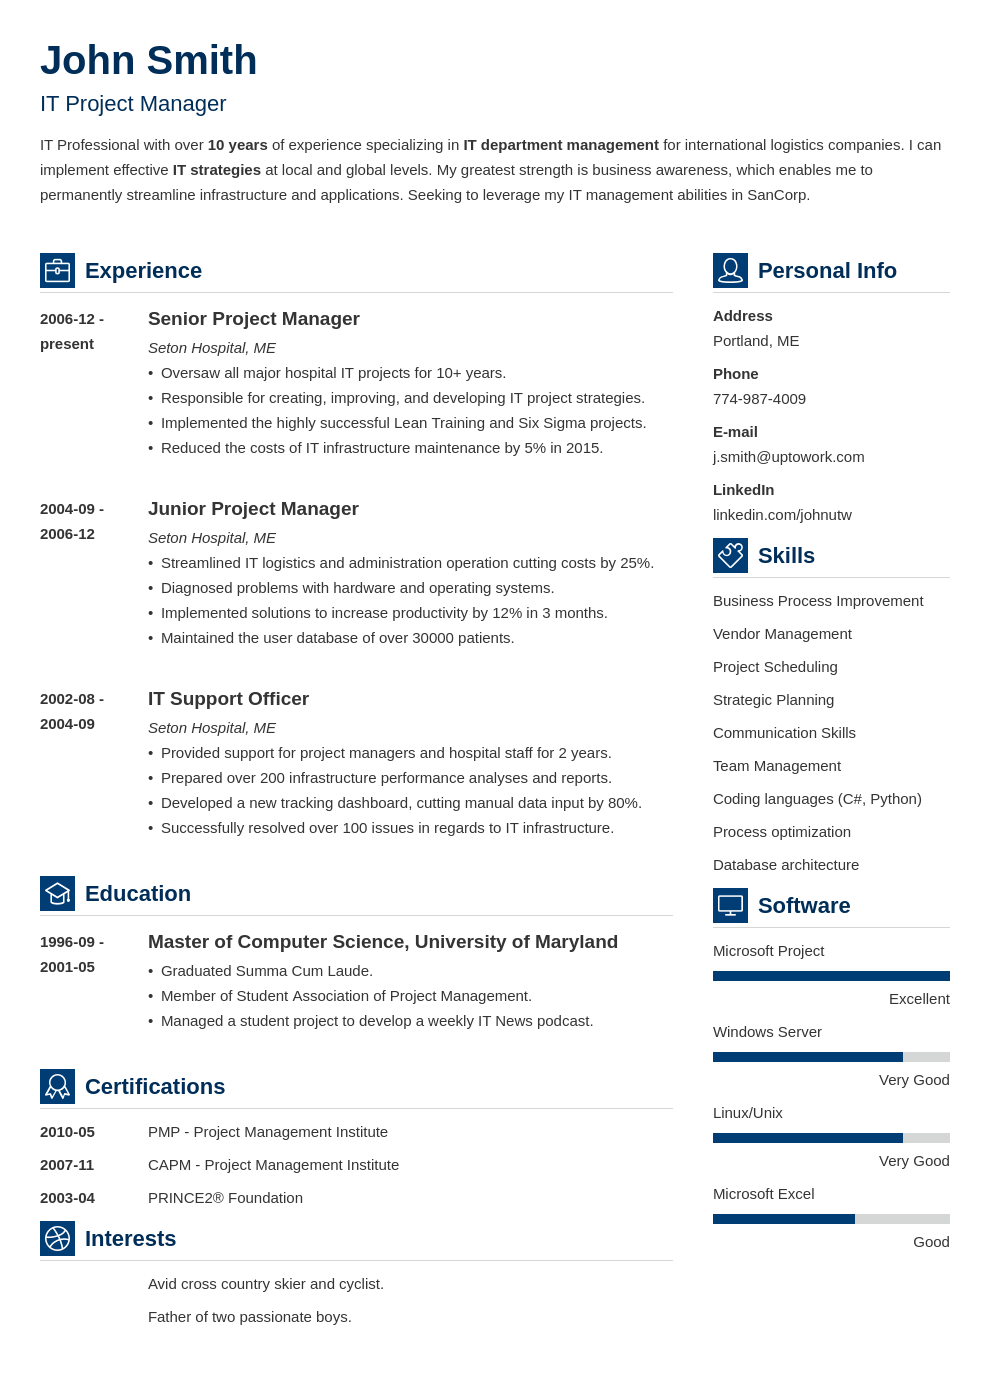 Resume Template And My Resume Draft 1 0 Resume Template Professional Best Resume Template Free Resume Template Download